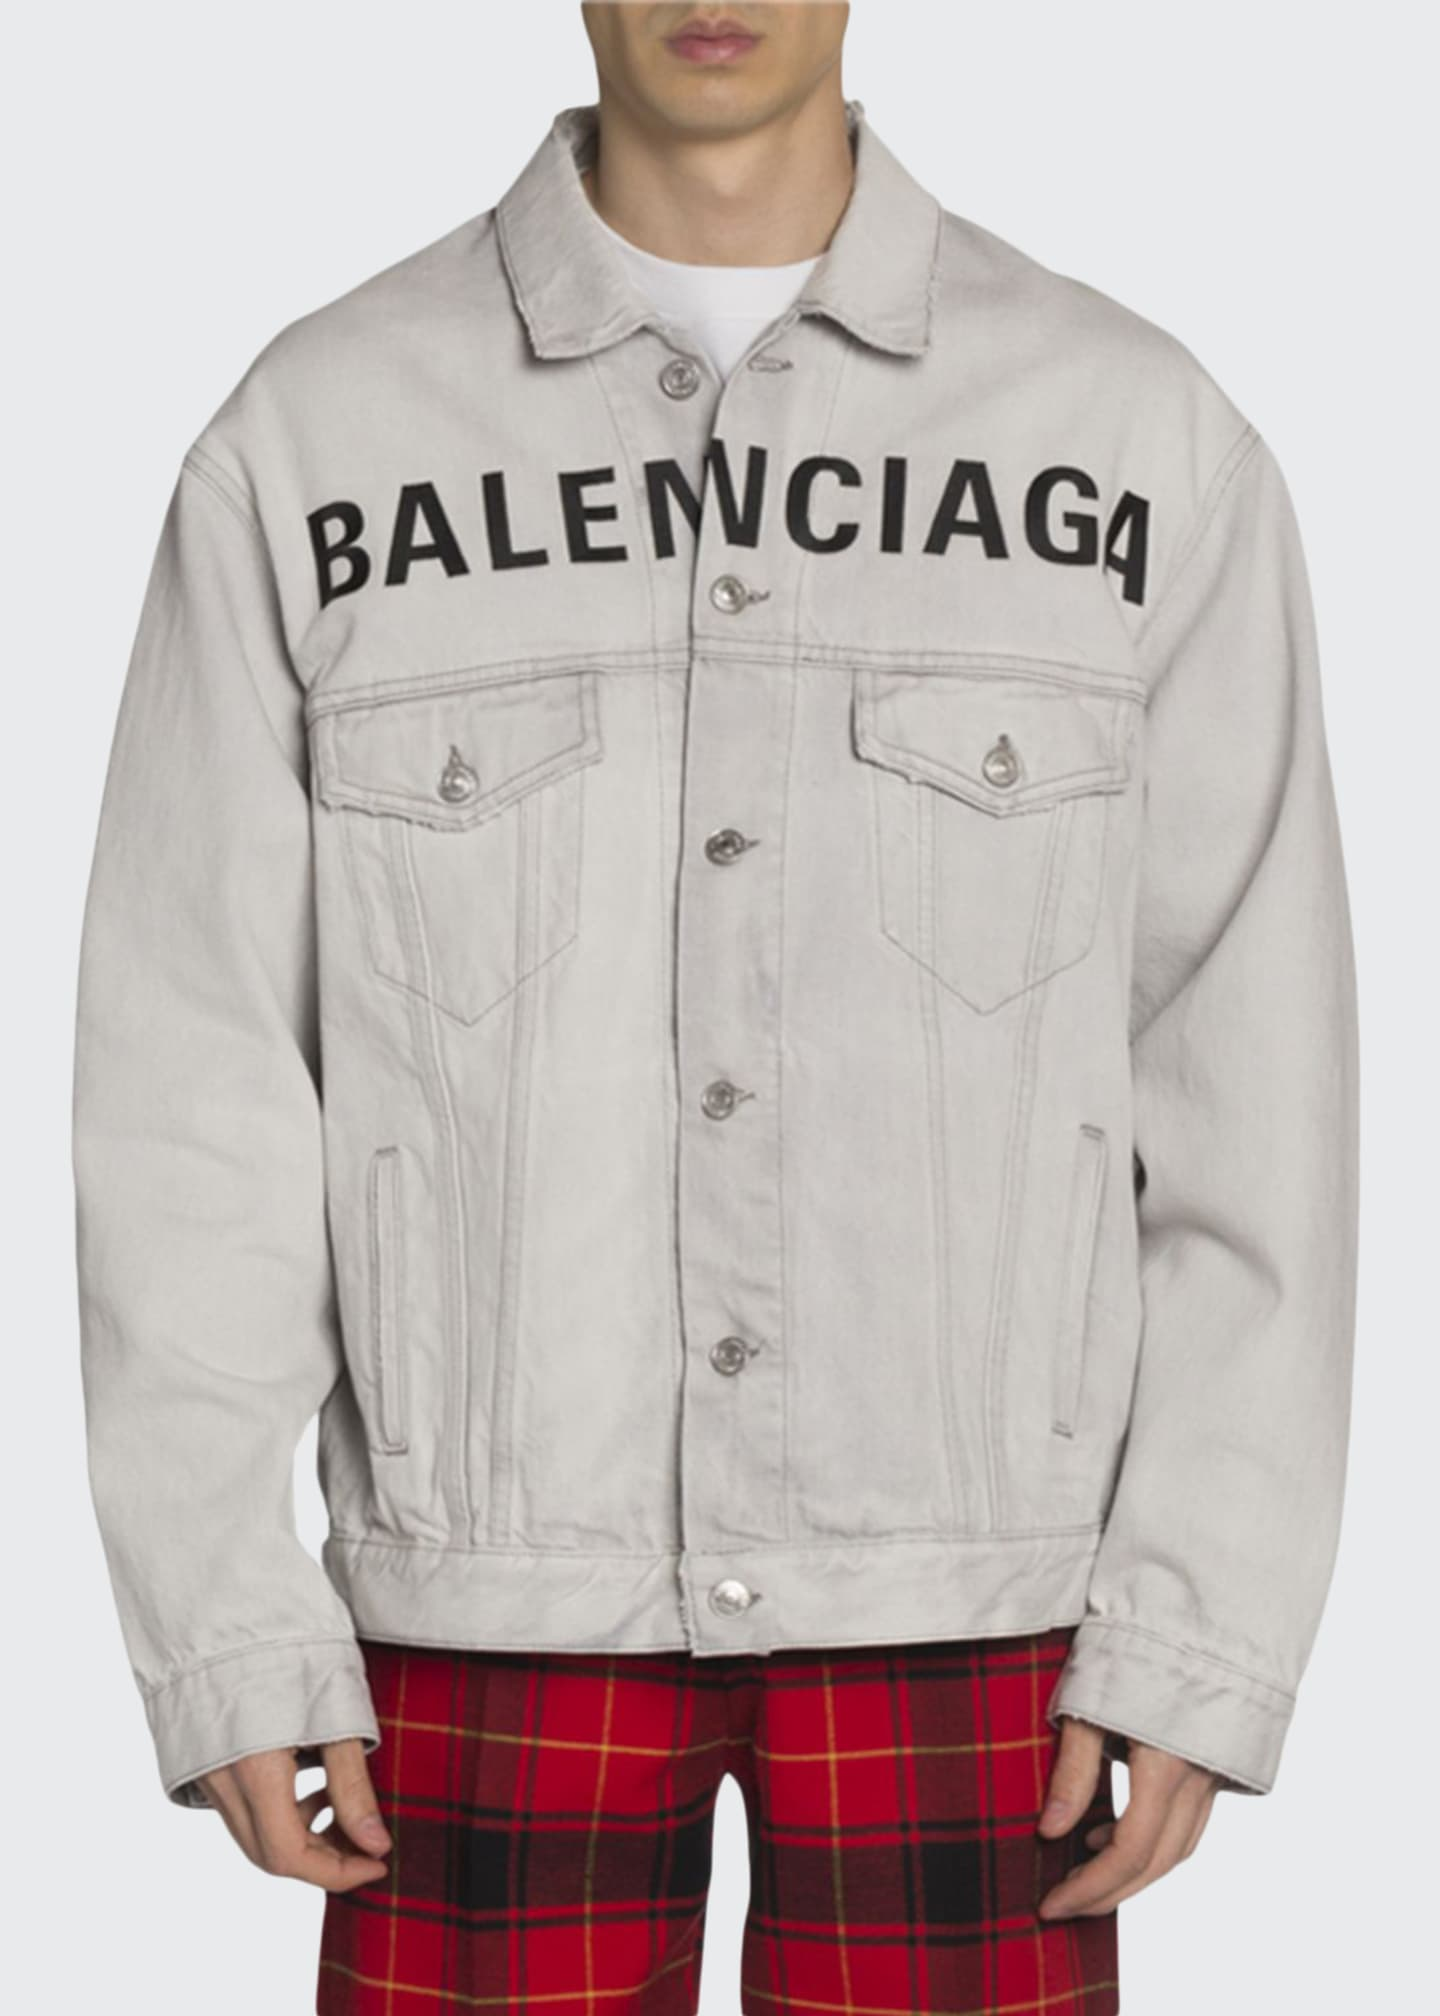 Balenciaga Men's Bleached Denim Jacket with Logo